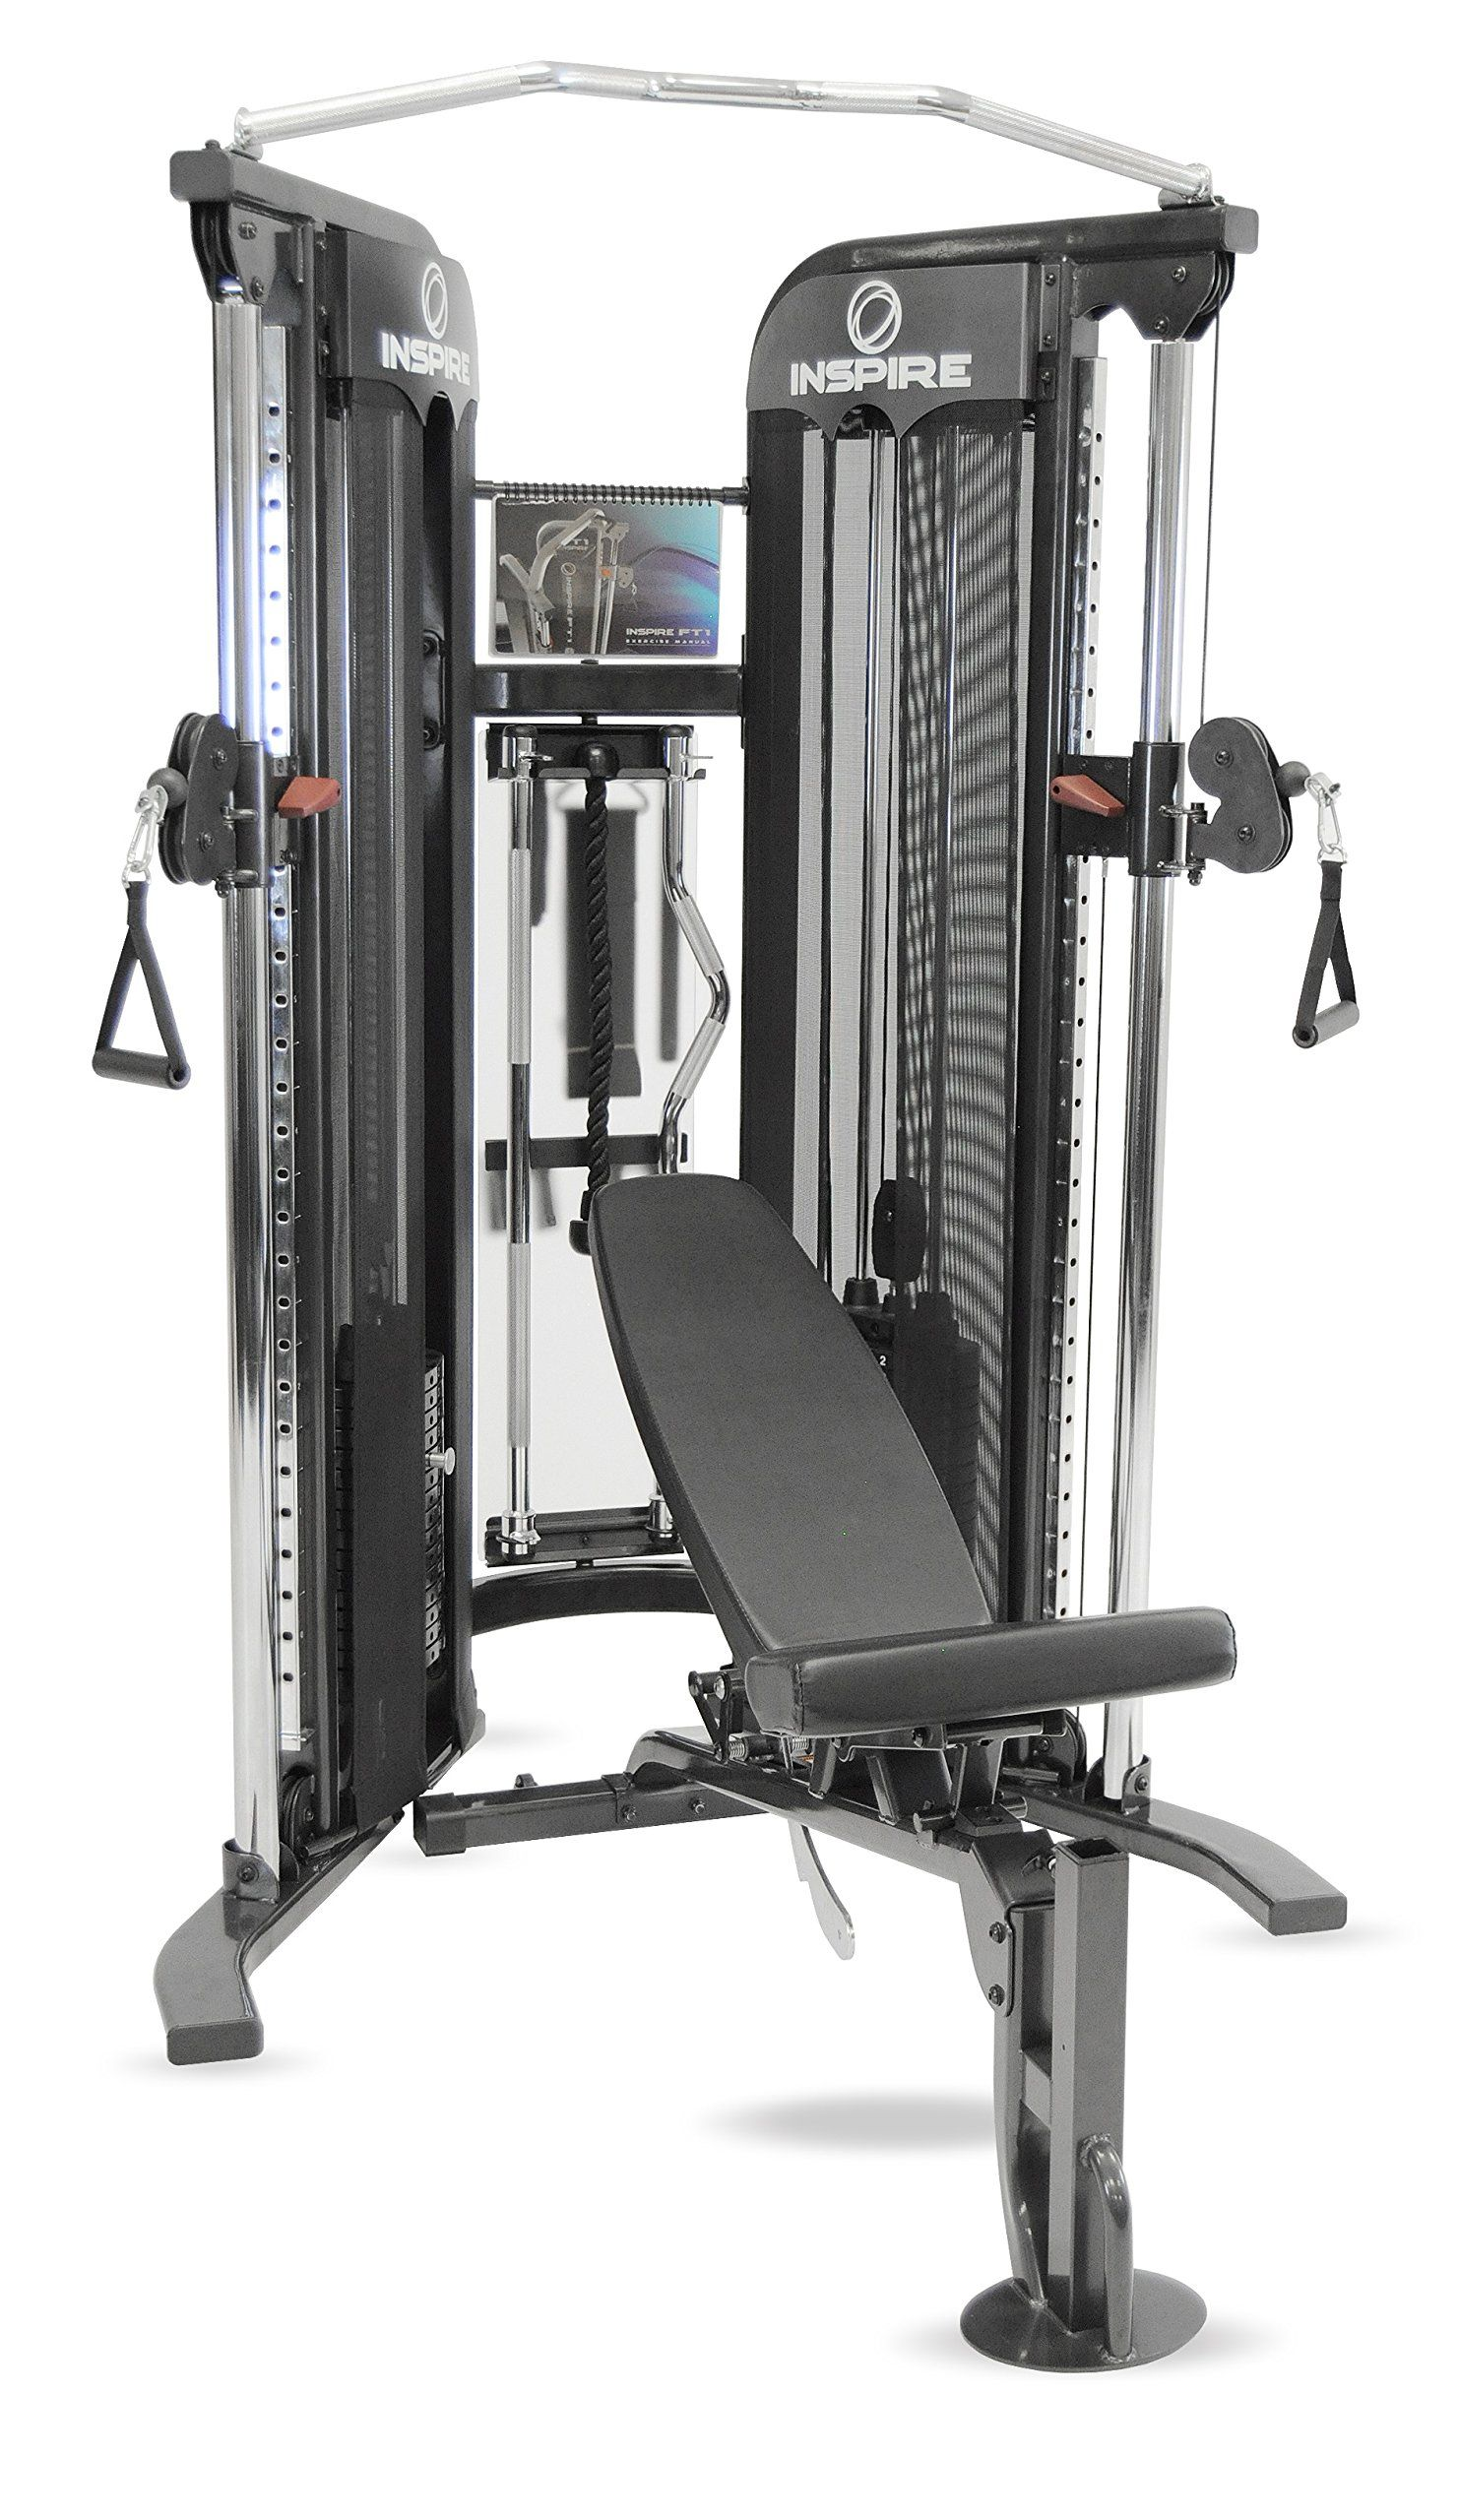 2cebfc3419b Inspire Fitness Ft1 Functional Trainer (Inspire FT1 Gym (With Bench)). Small